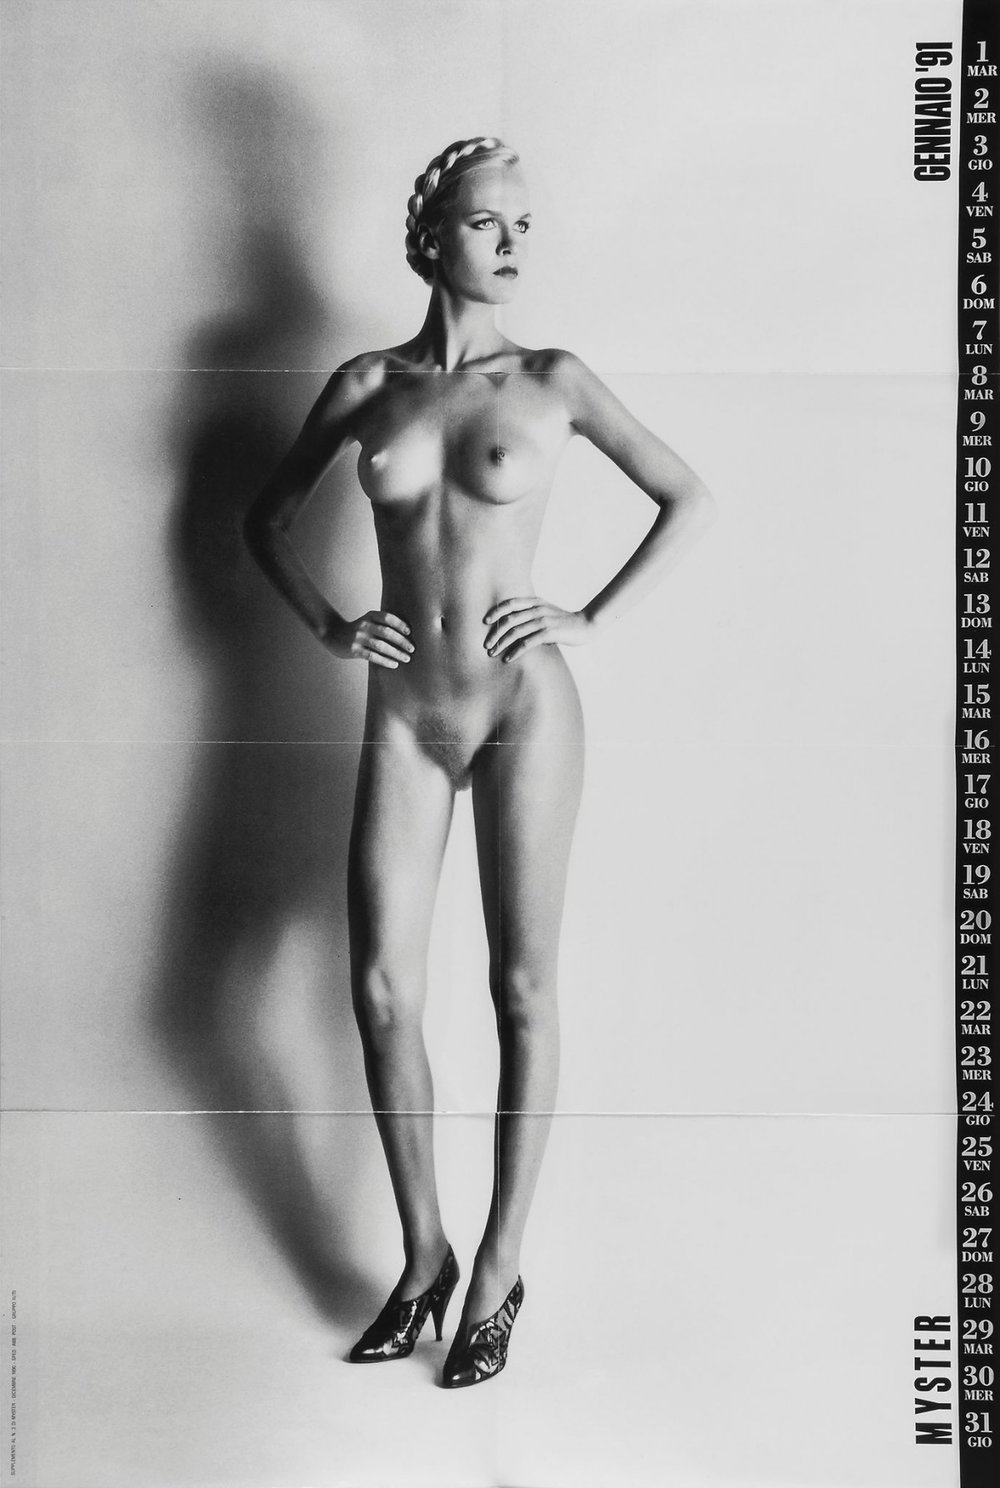 The original shot by Helmut Newton